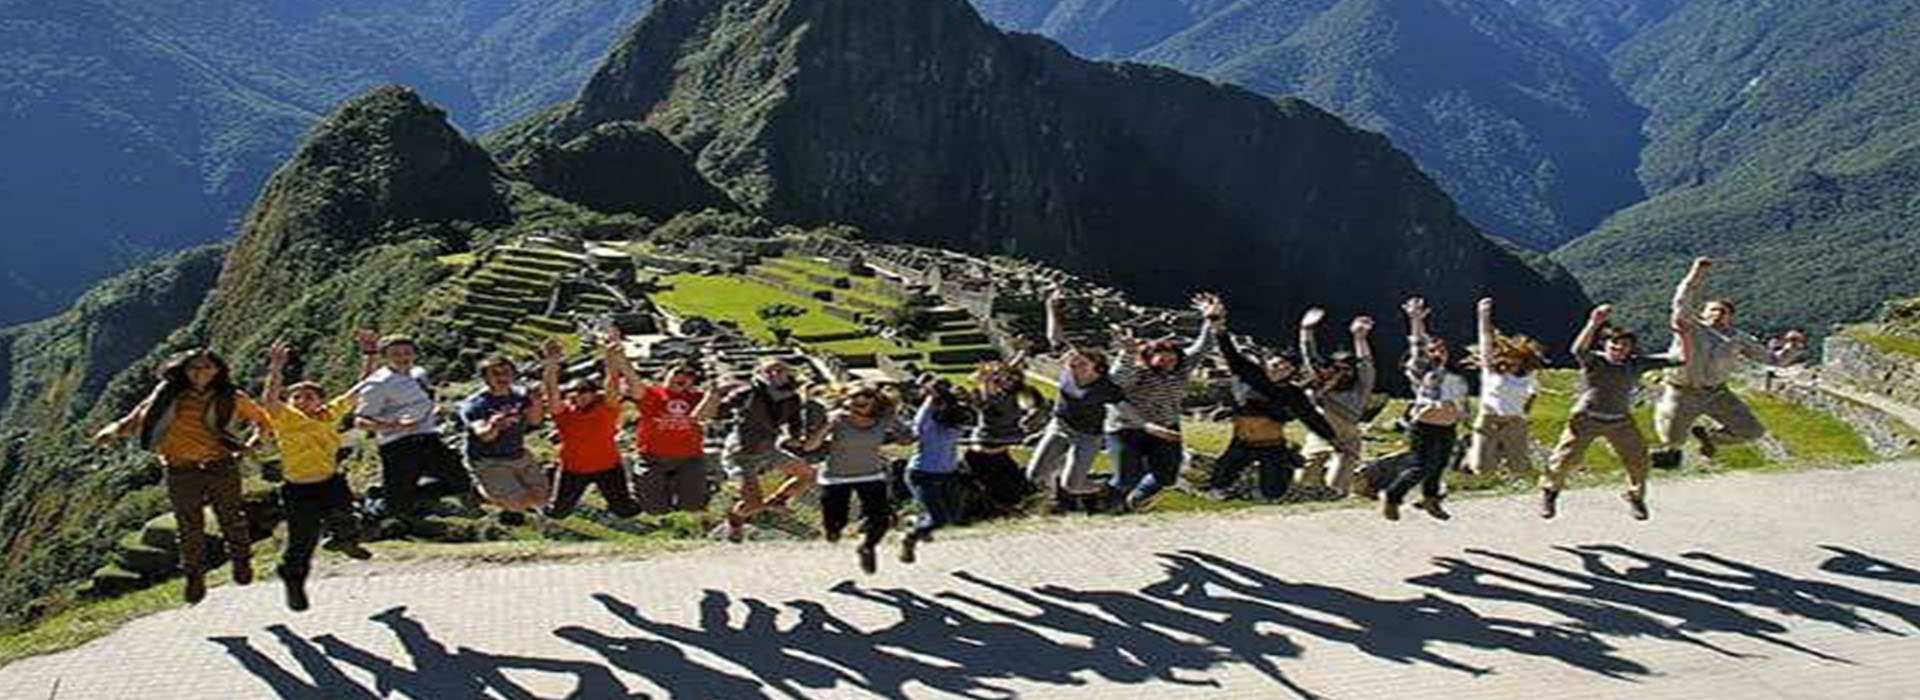 Sacred Valley to Machu Picchu 2 days by train